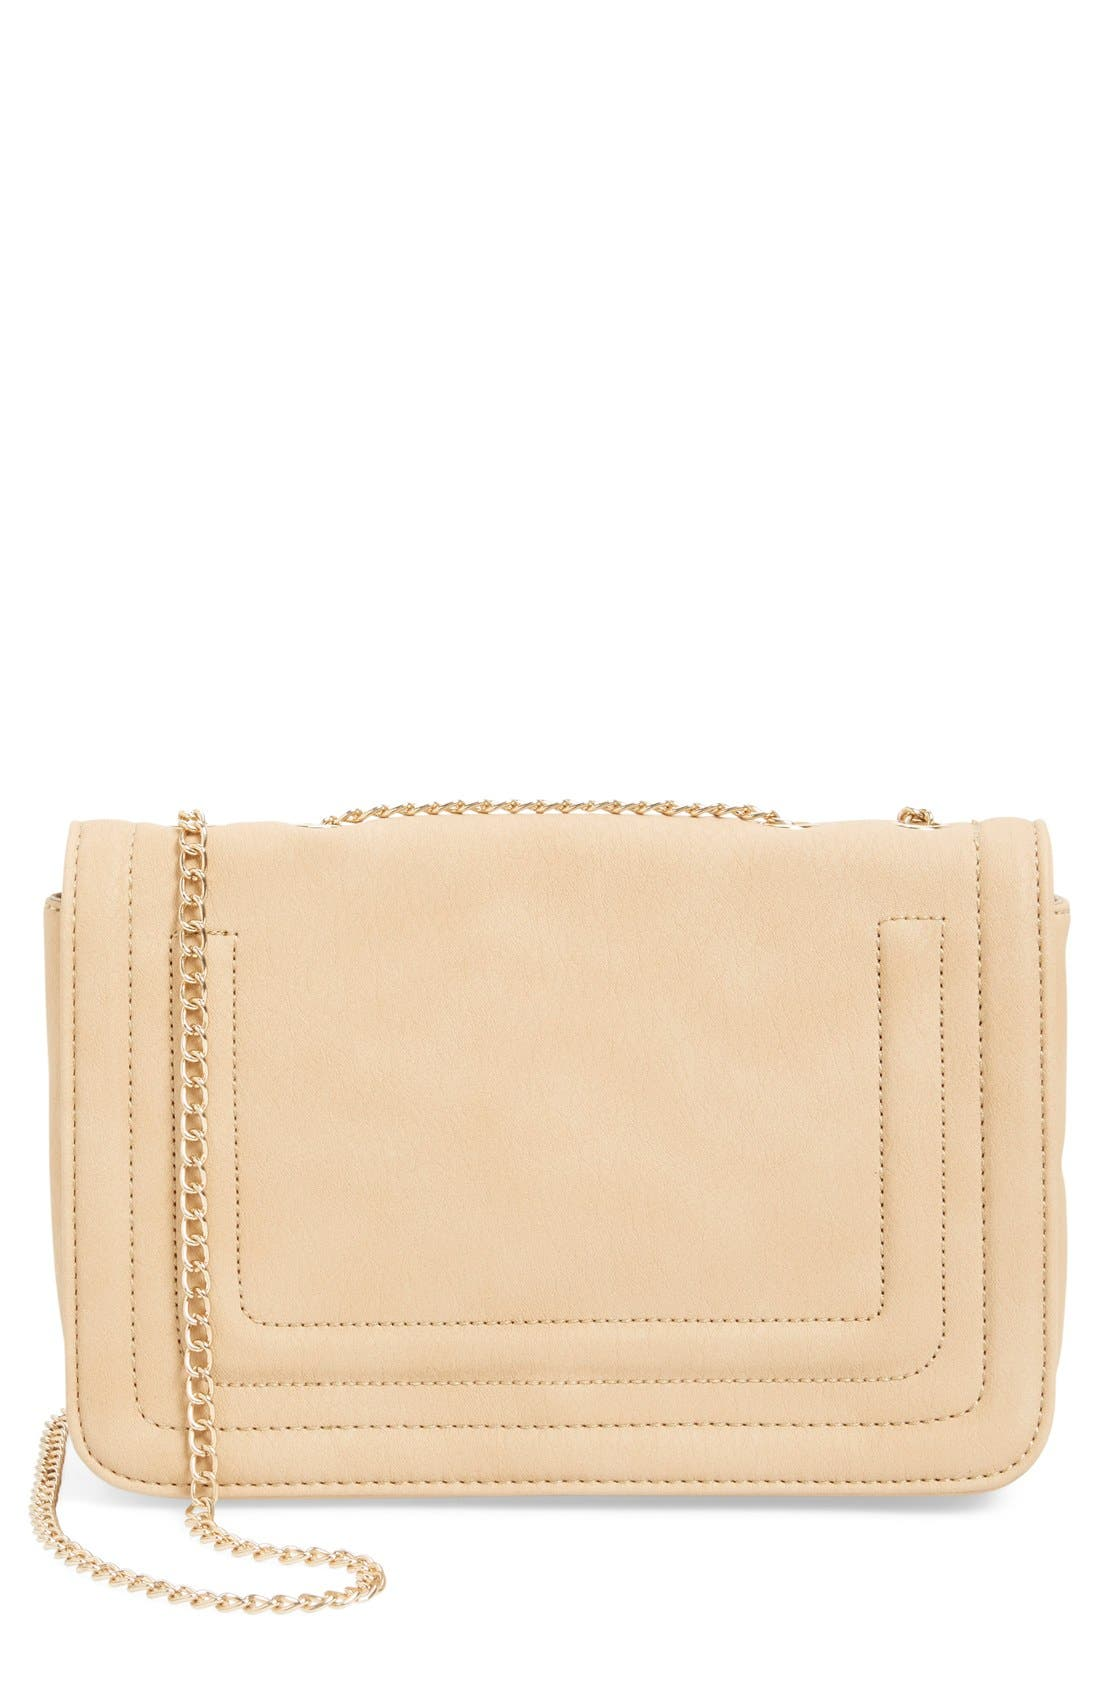 Quilted Faux Leather Crossbody Bag,                         Main,                         color, Nude